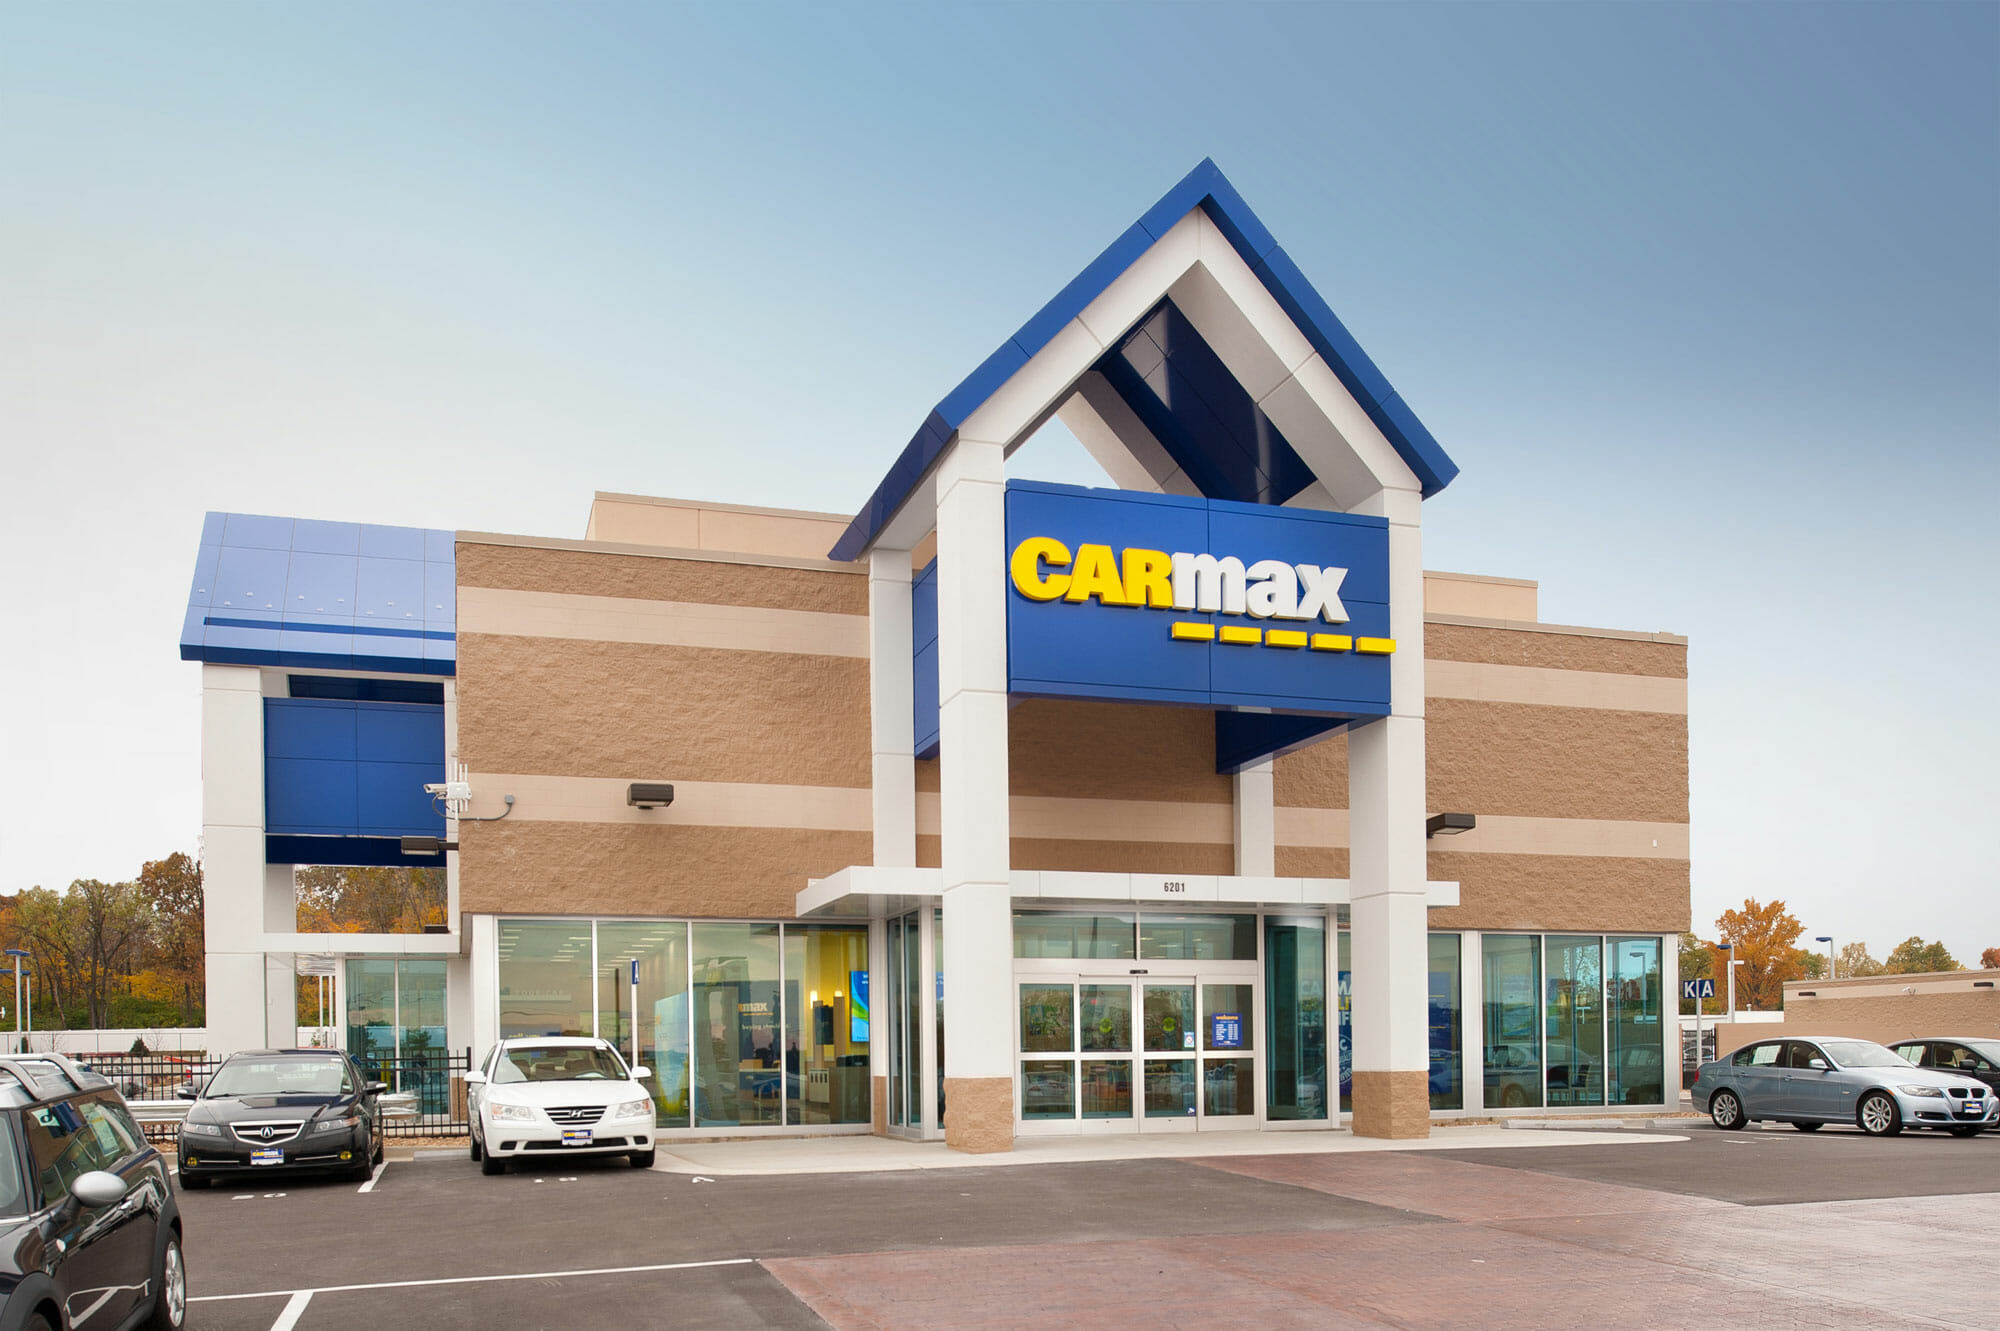 PARIC Corp finished the CarMax Retail Location in south St. Louis